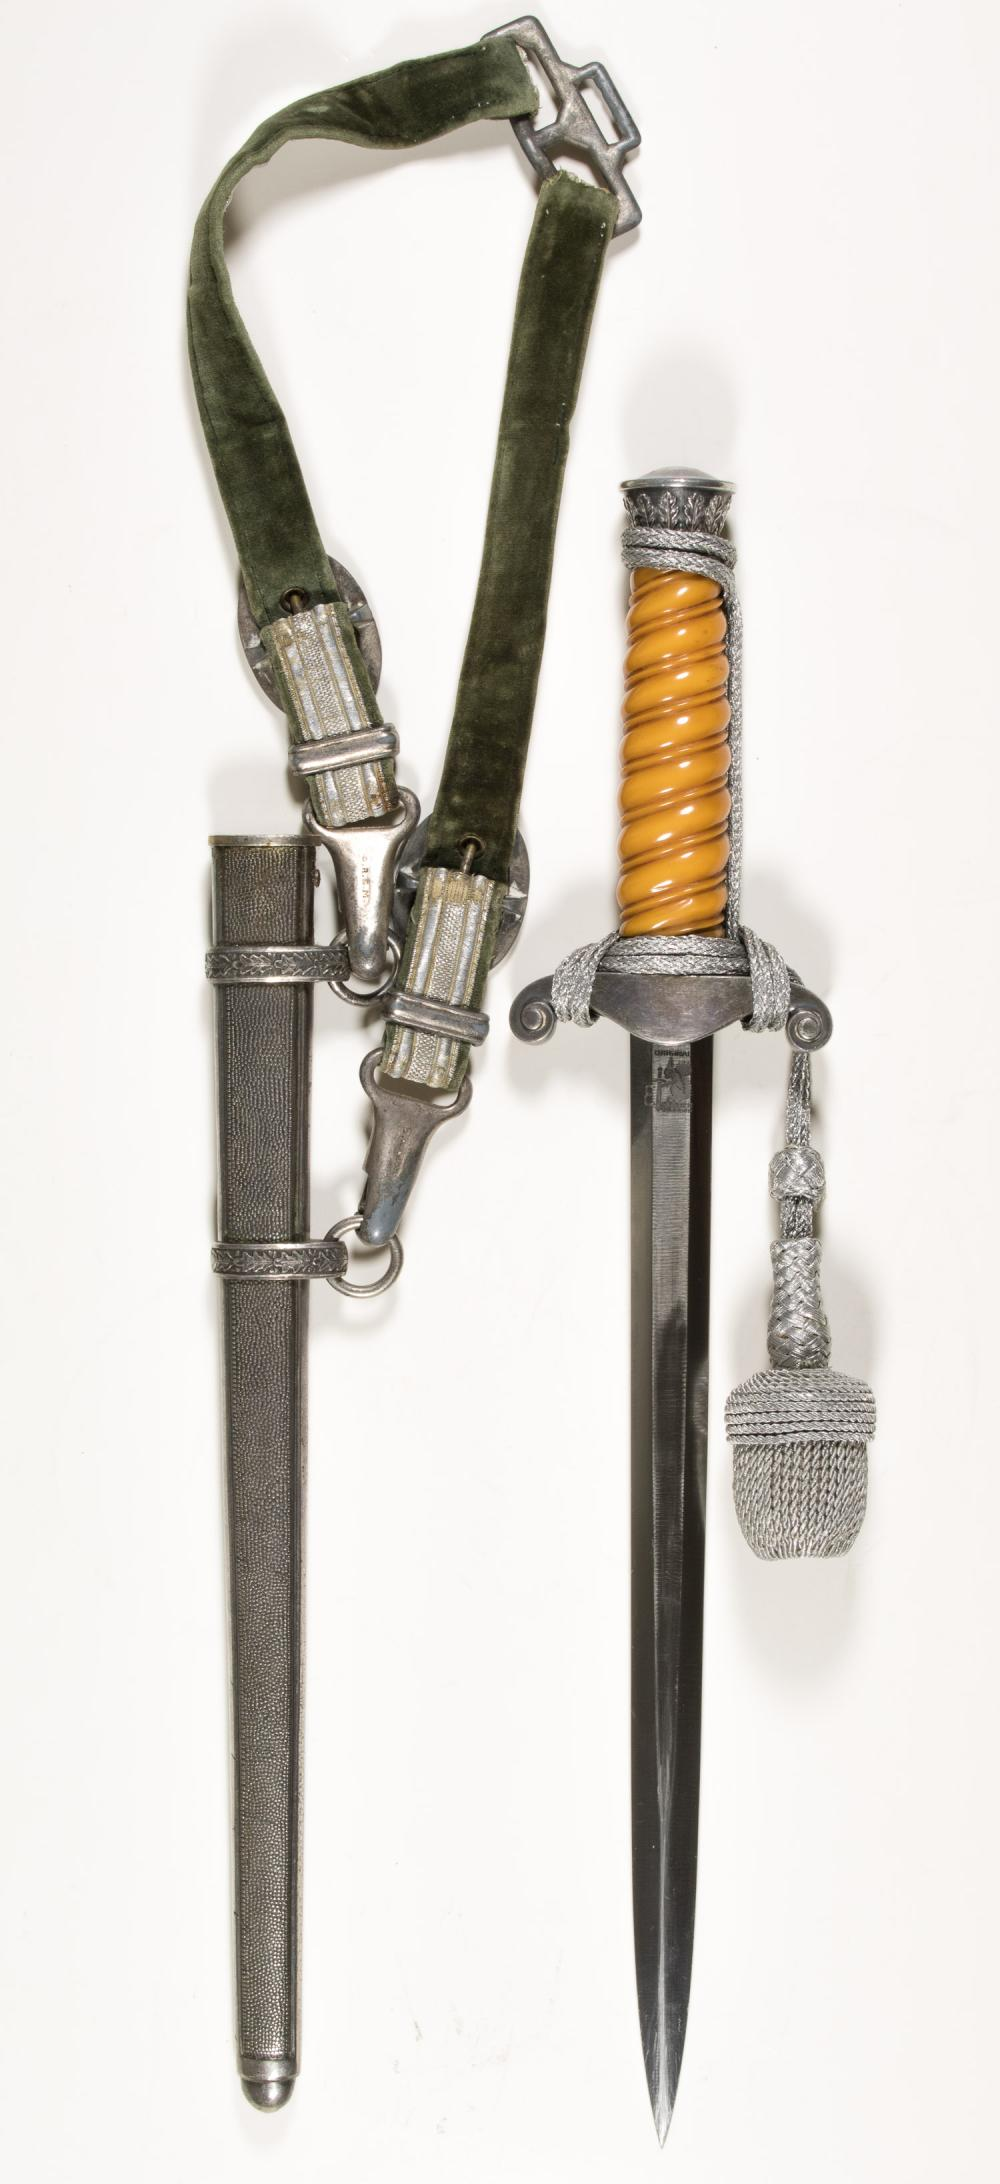 HEER OFFICER'S DAGGER WITH SCABBARD BY EICKHORN